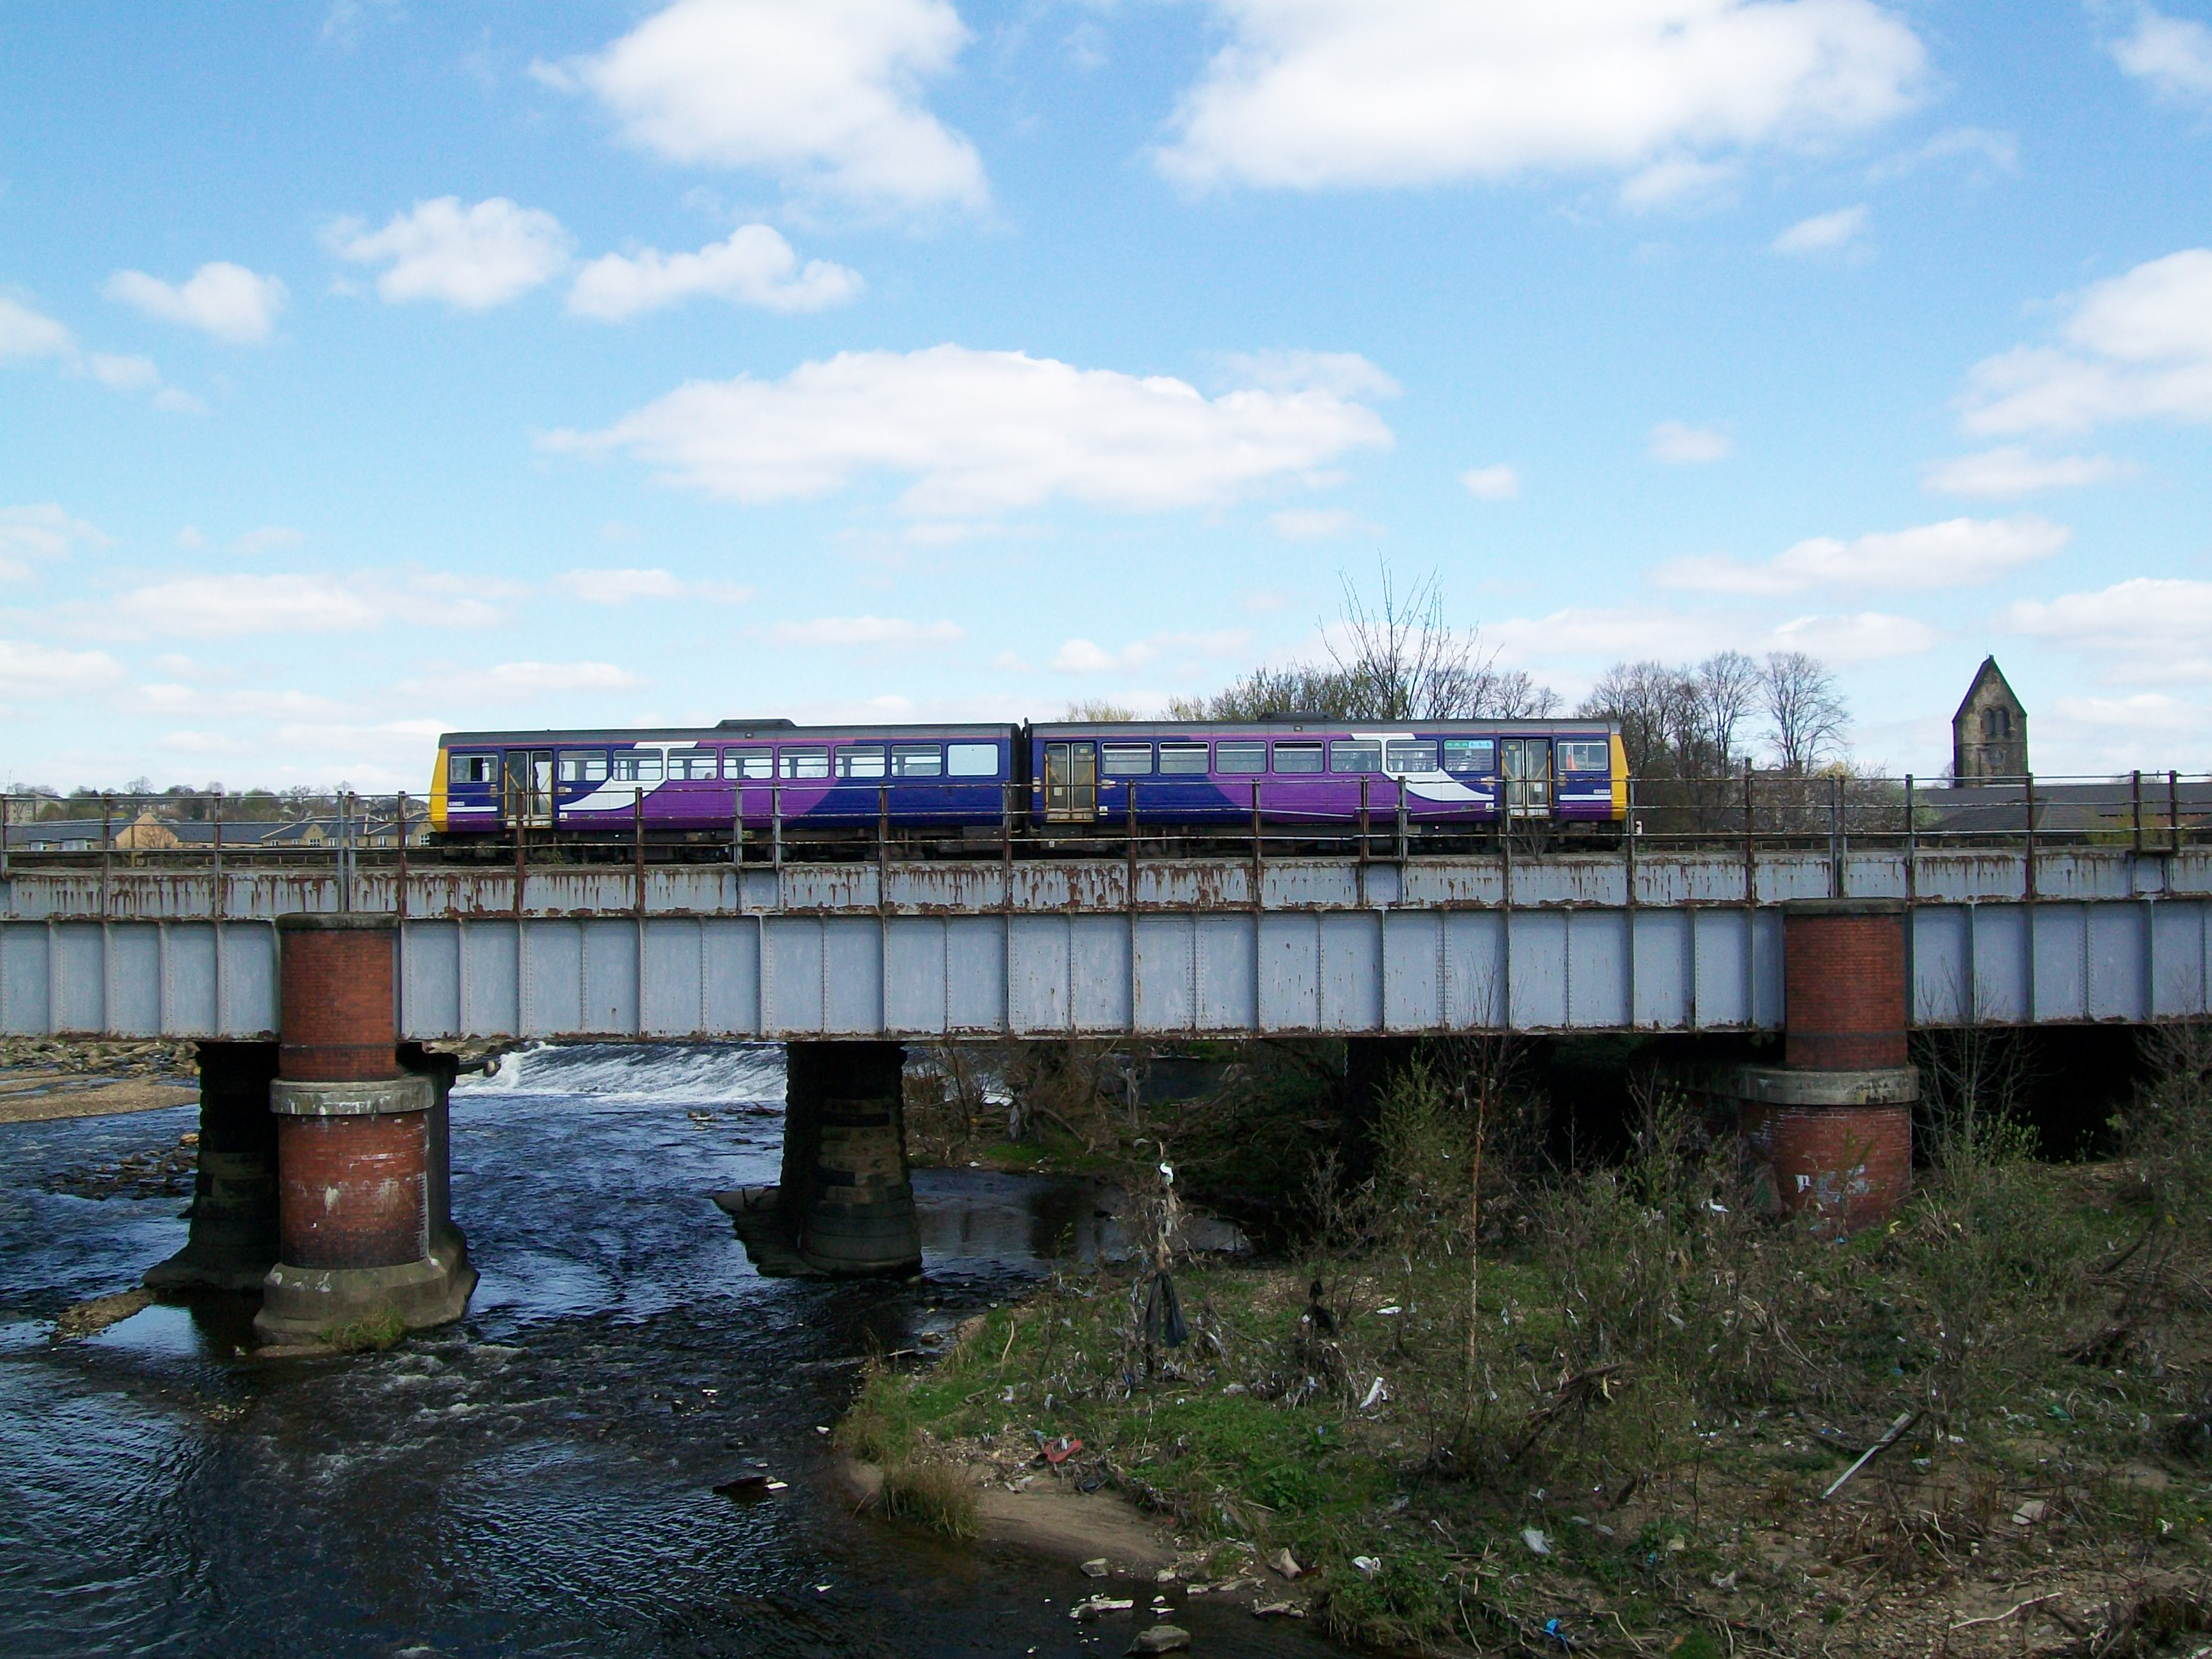 Pacer DMU on the bridge over the River Calder in Mirfield, Thursday 11/04/2019